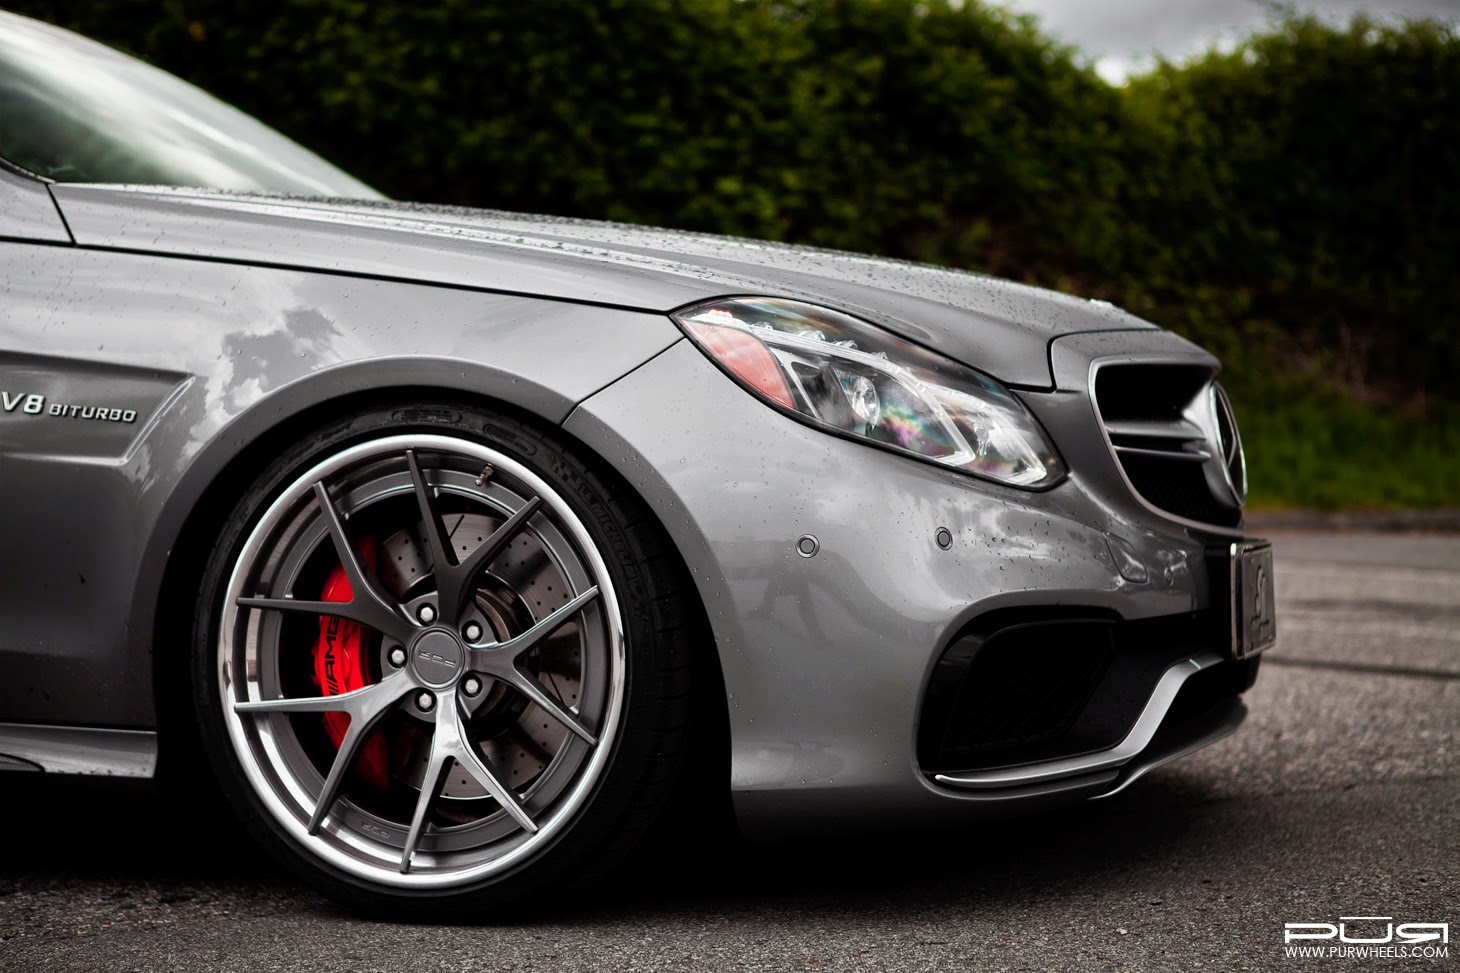 Mercedes benz w212 e63 amg facelift on pur wheels benztuning for Wheels for mercedes benz